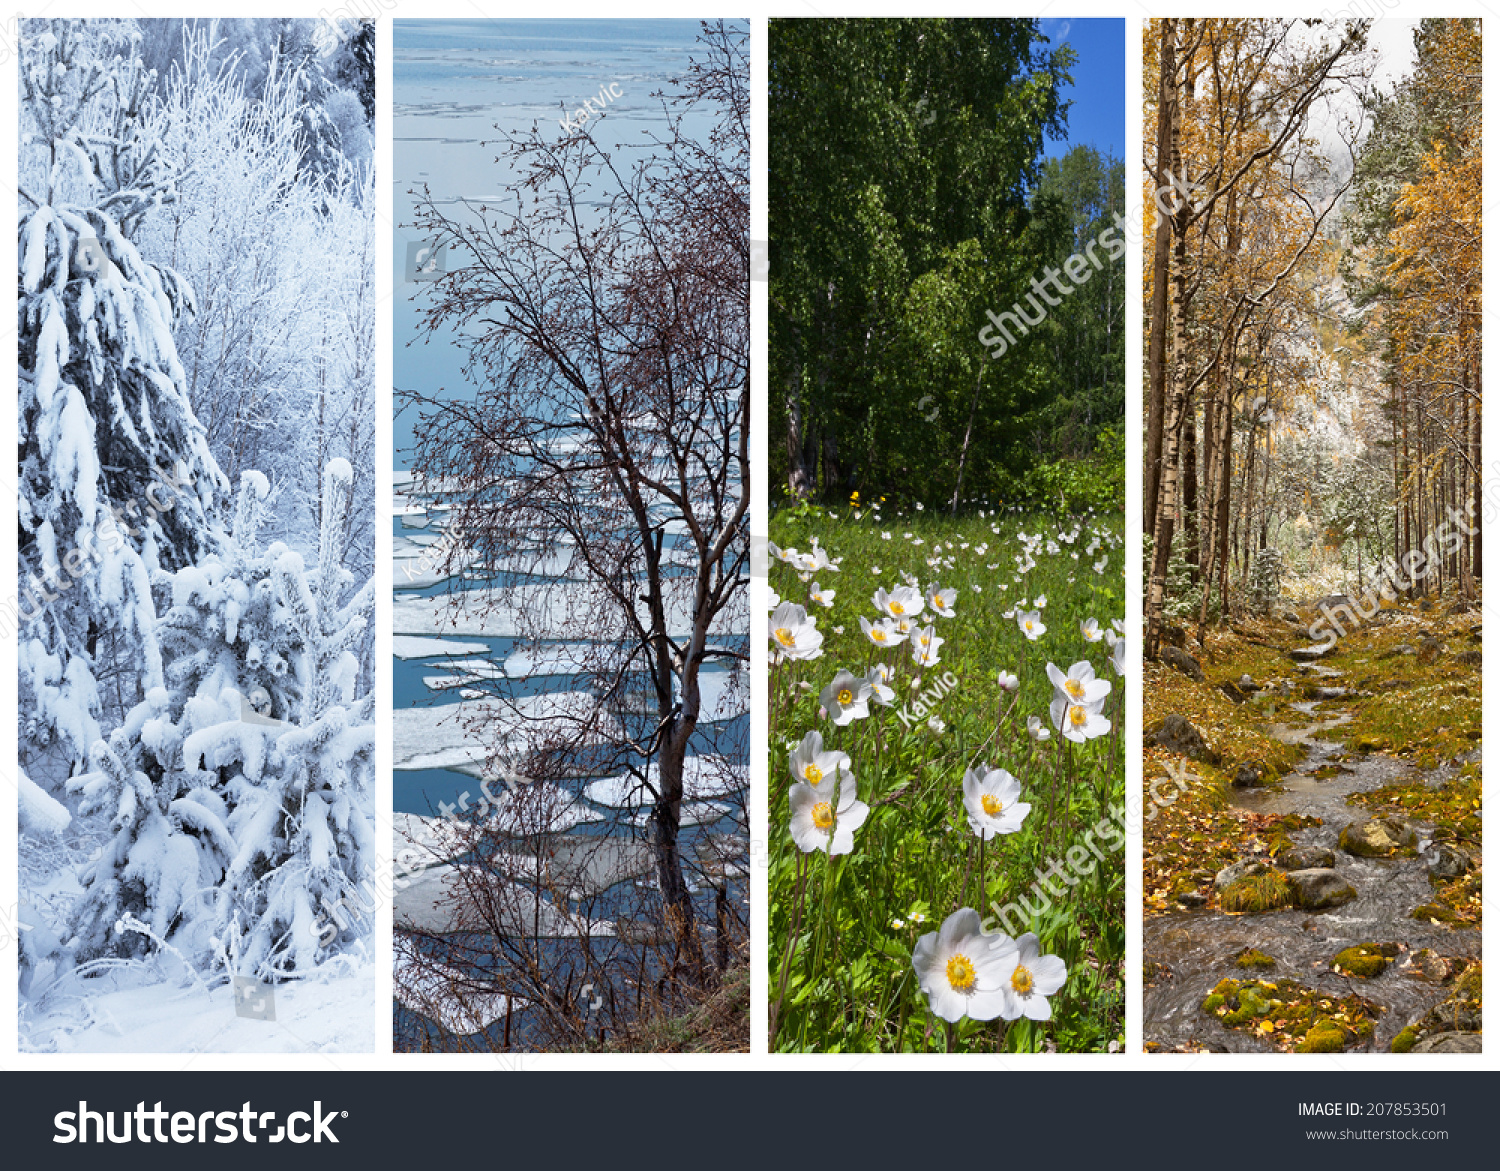 Four Seasons Collage Stock Photos, Images, &- Pictures - 230 Images